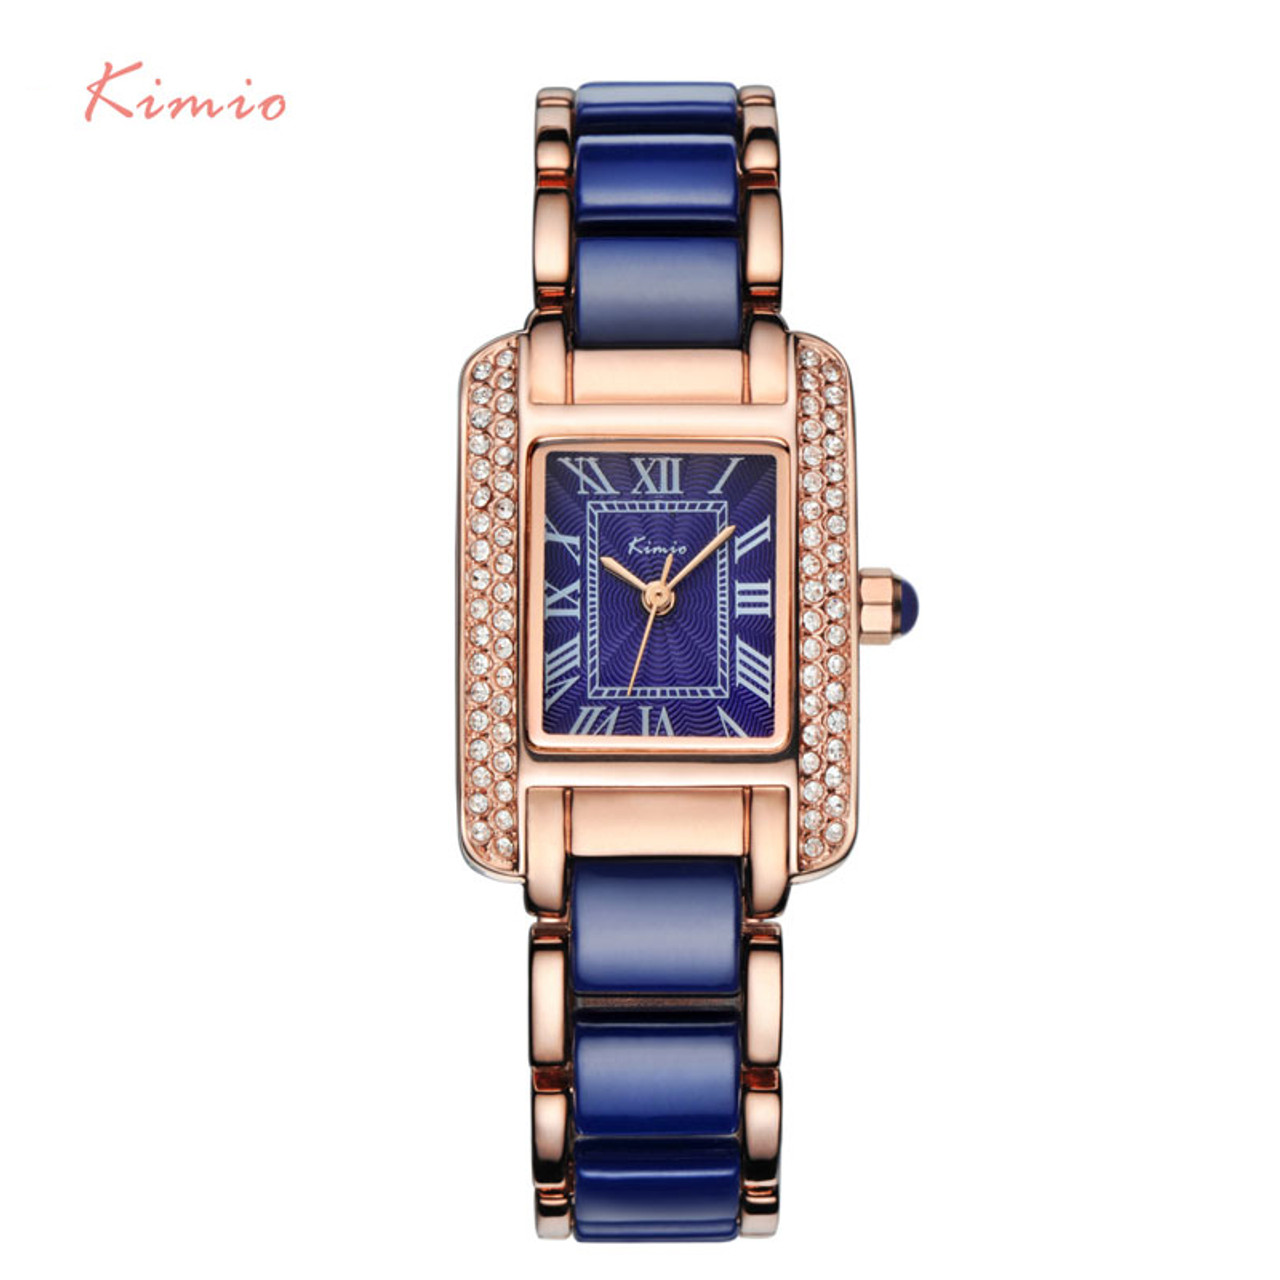 0ec9f9d3b7e0 ... Kimio Women Quartz Watch Fashion Blue Square Diamond Bracelet Watches  Brand Imitation Ceramics Student Waterproof Wristwatch ...